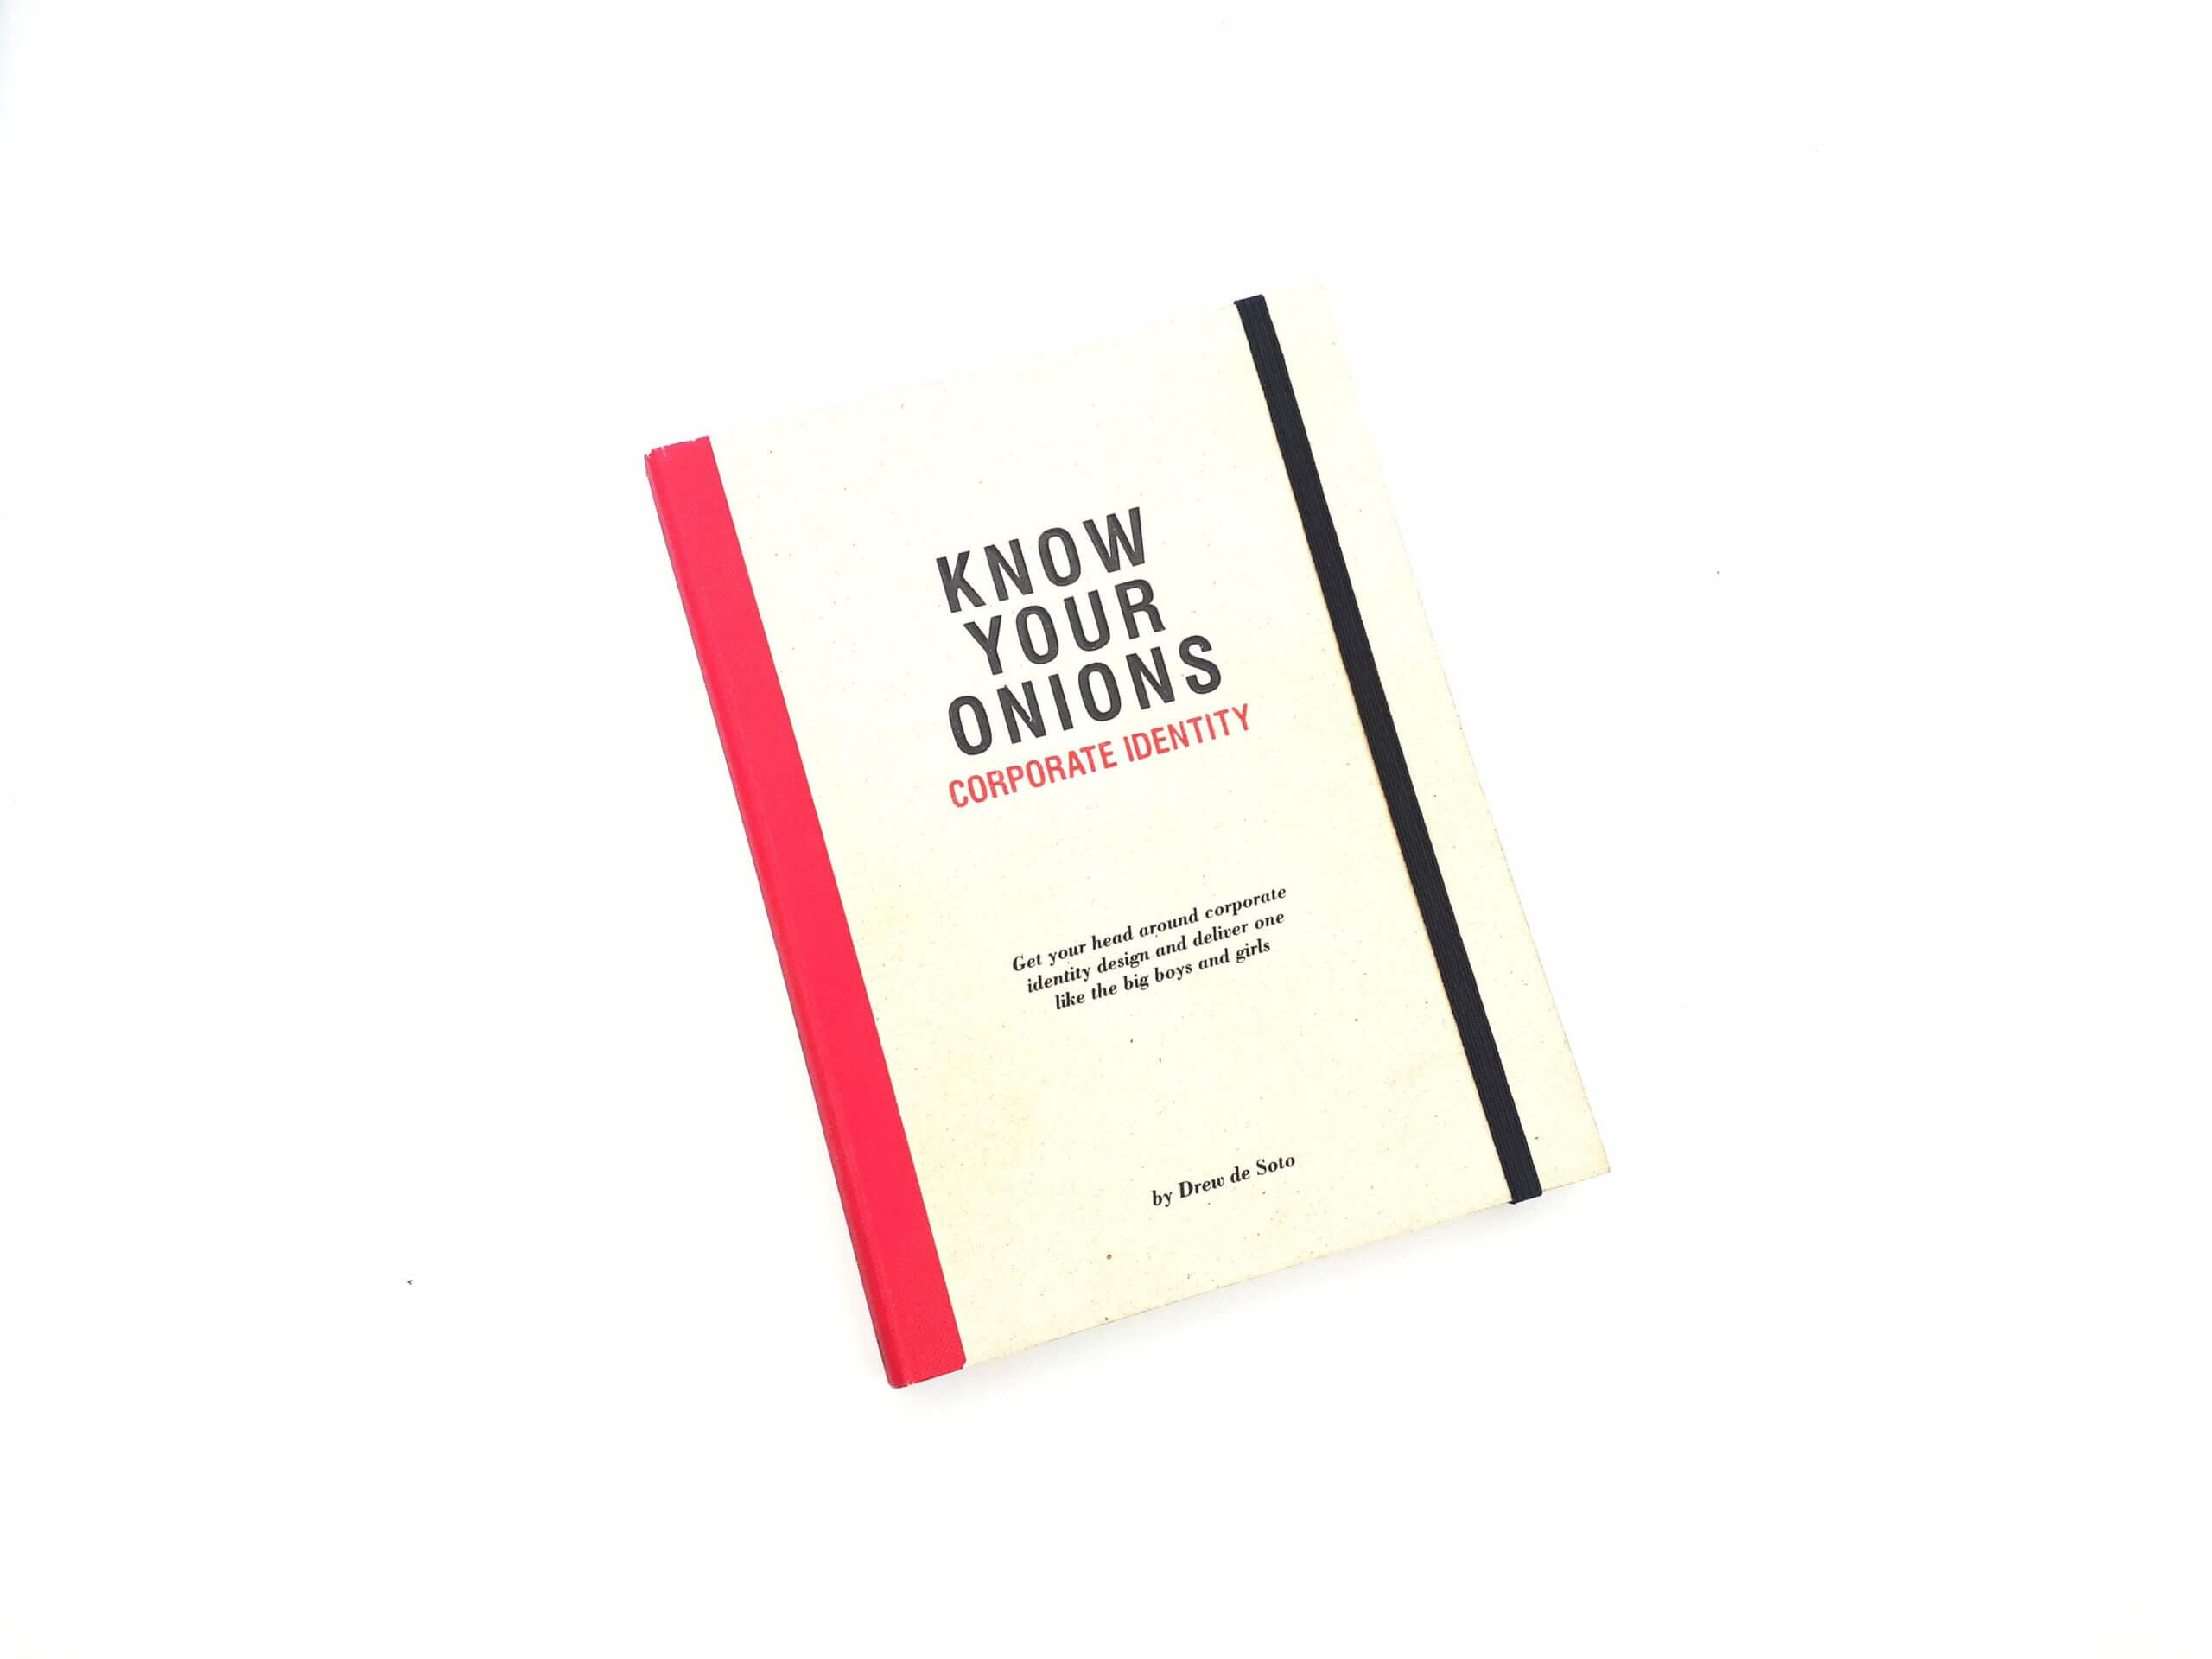 Know Your Onions - Corporate Identity By Drew de Soto - Book Review_2